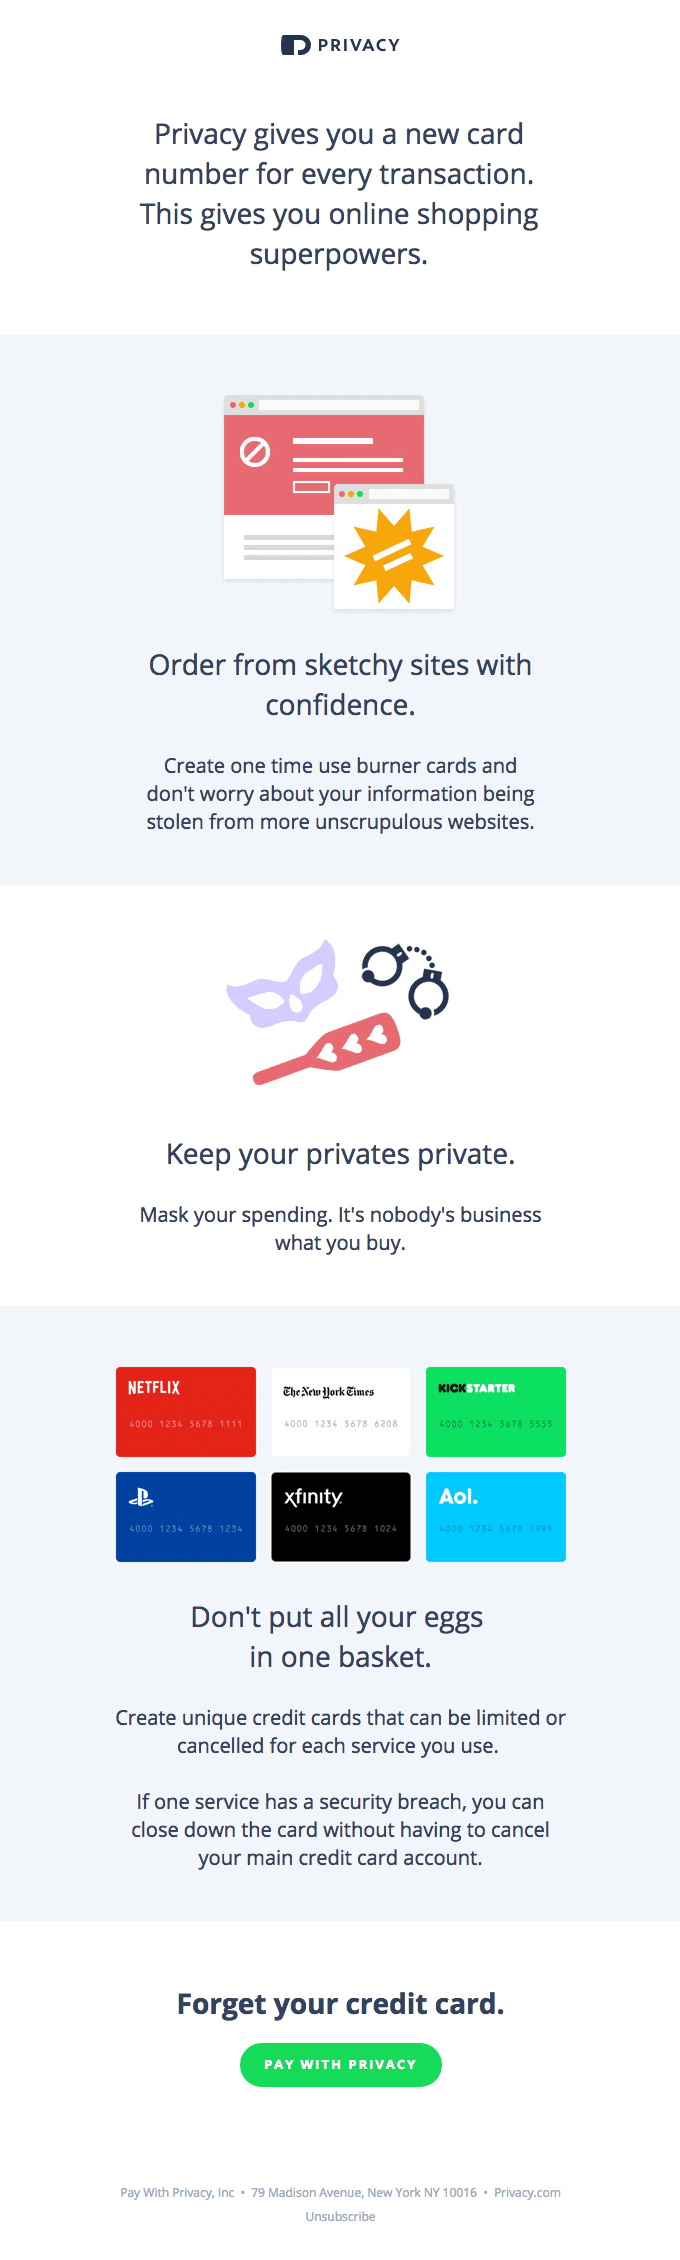 Privacy's onboarding email example